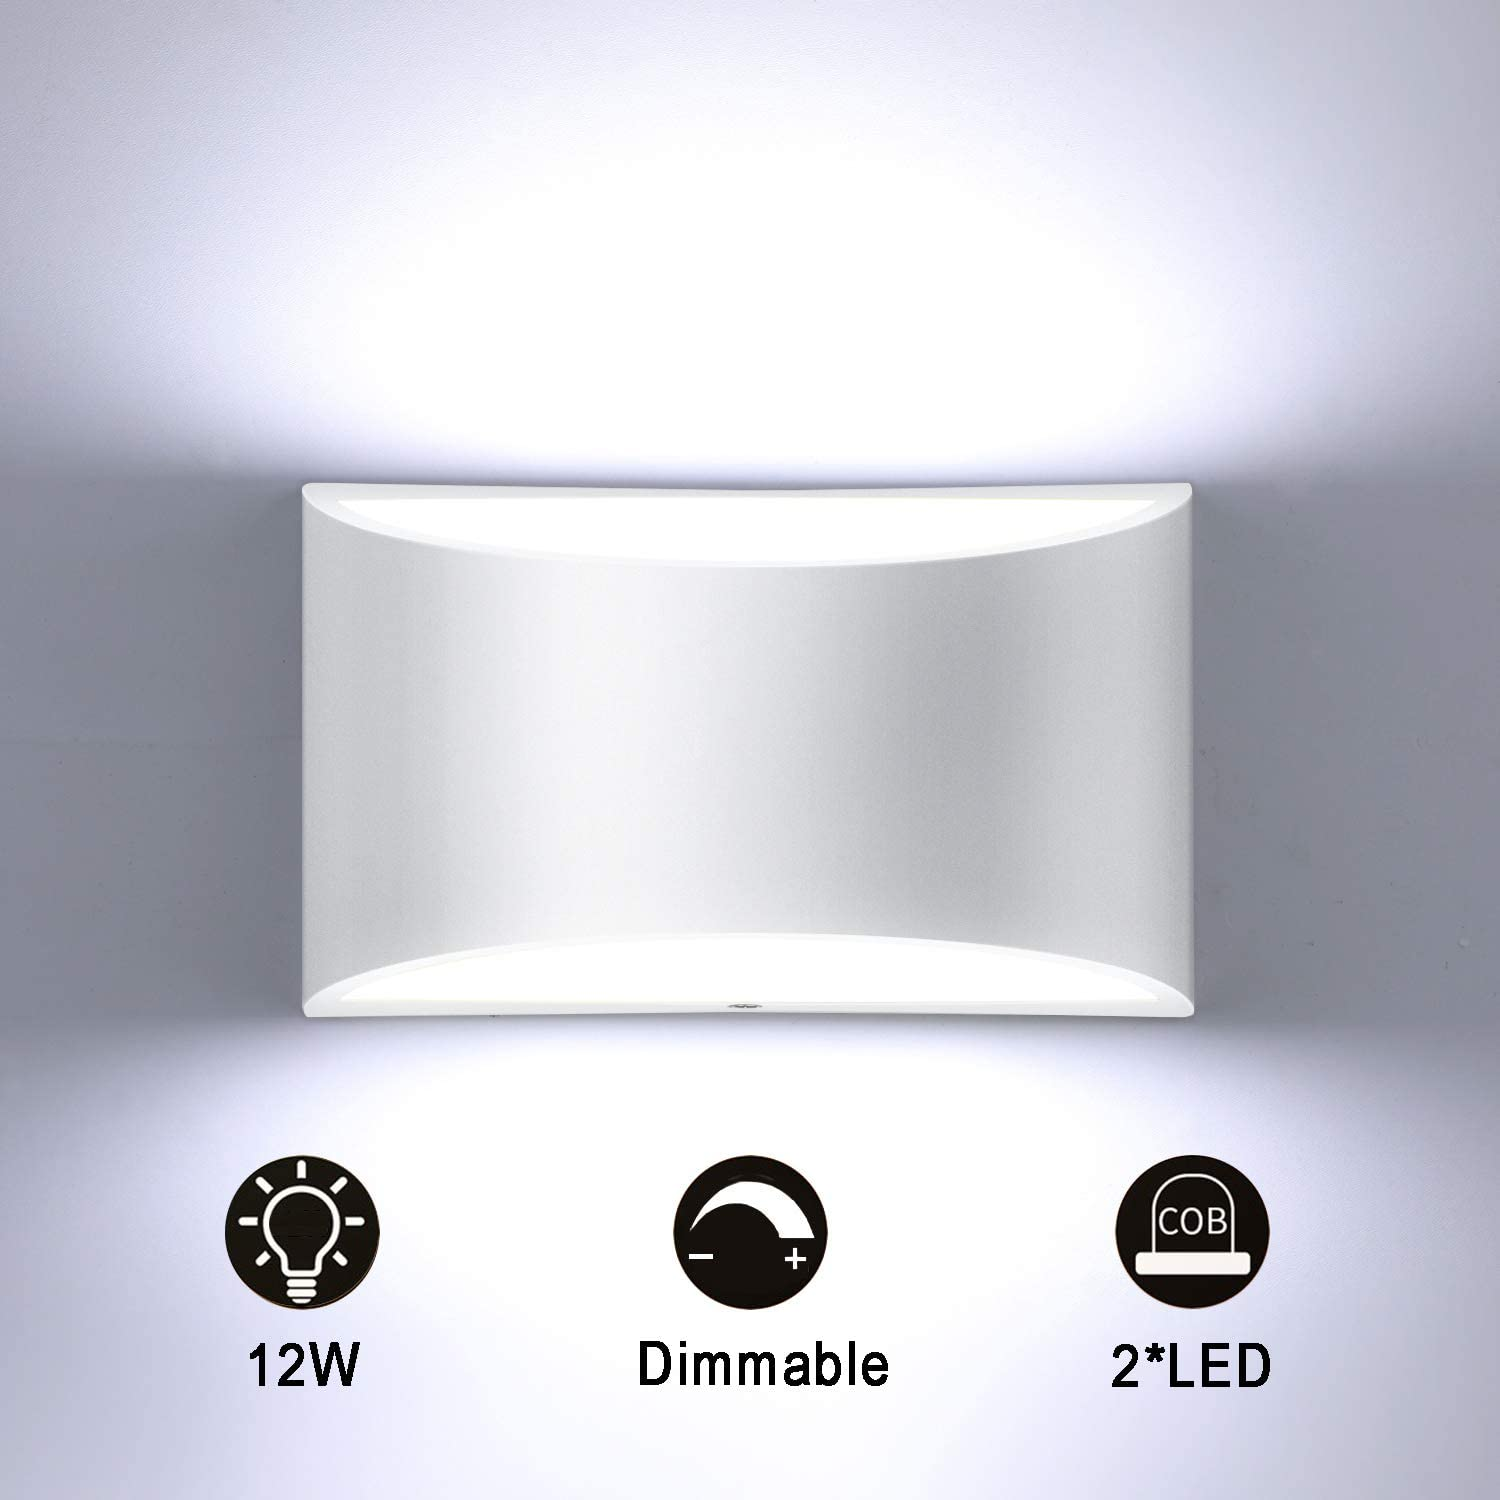 Lightess Dimmable Wall Sconces Indoor Up Down Wall Lamps Modern Wall Mounted Sconce Lighting Fixtures 12W White Hallway Wall Lighting Hardwired for Bedroom Living Room Stairs, Cool White